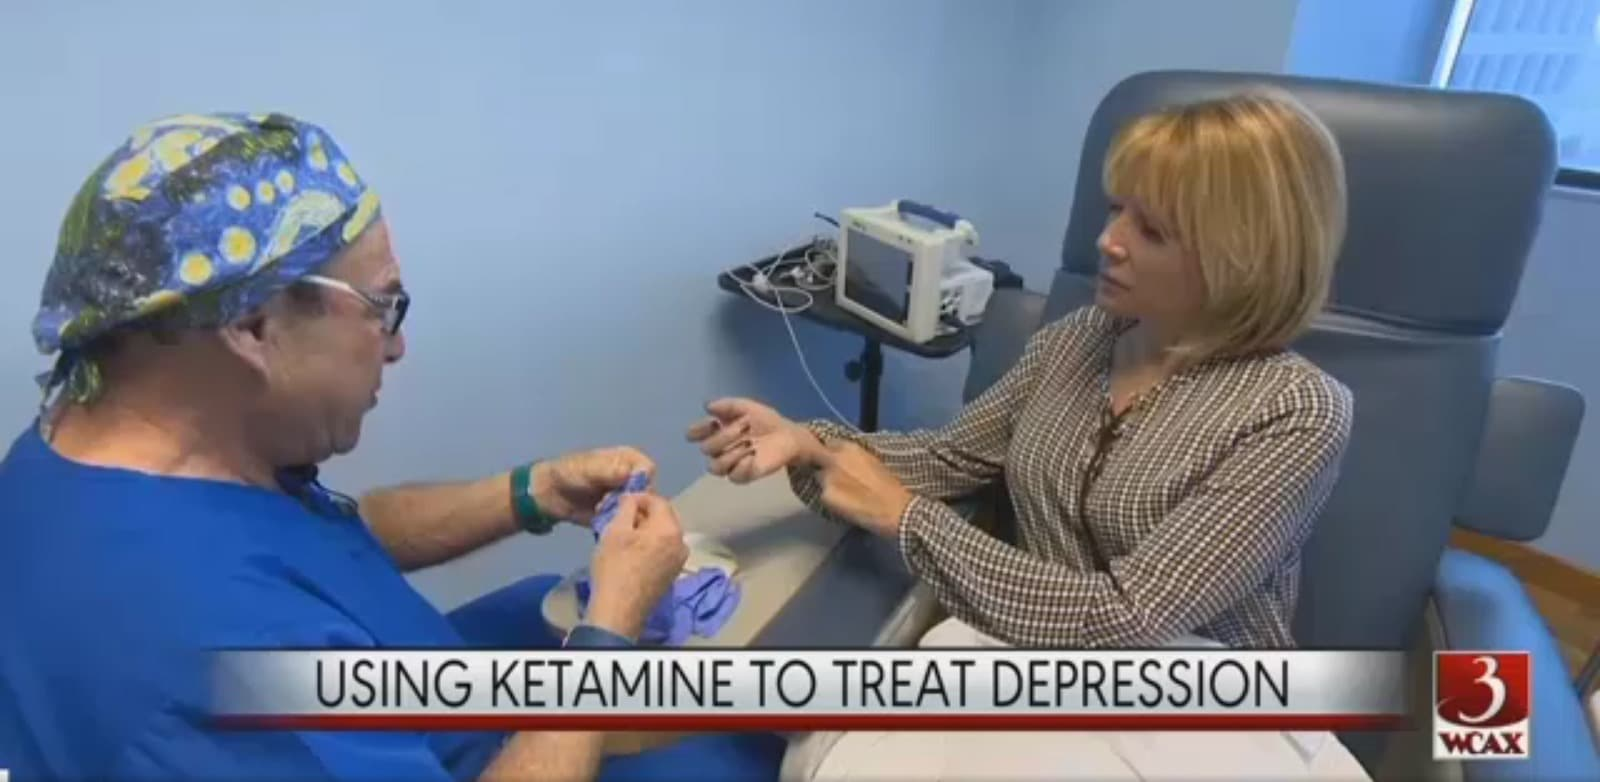 CBS News Reports: Is ketamine the cure for depression?